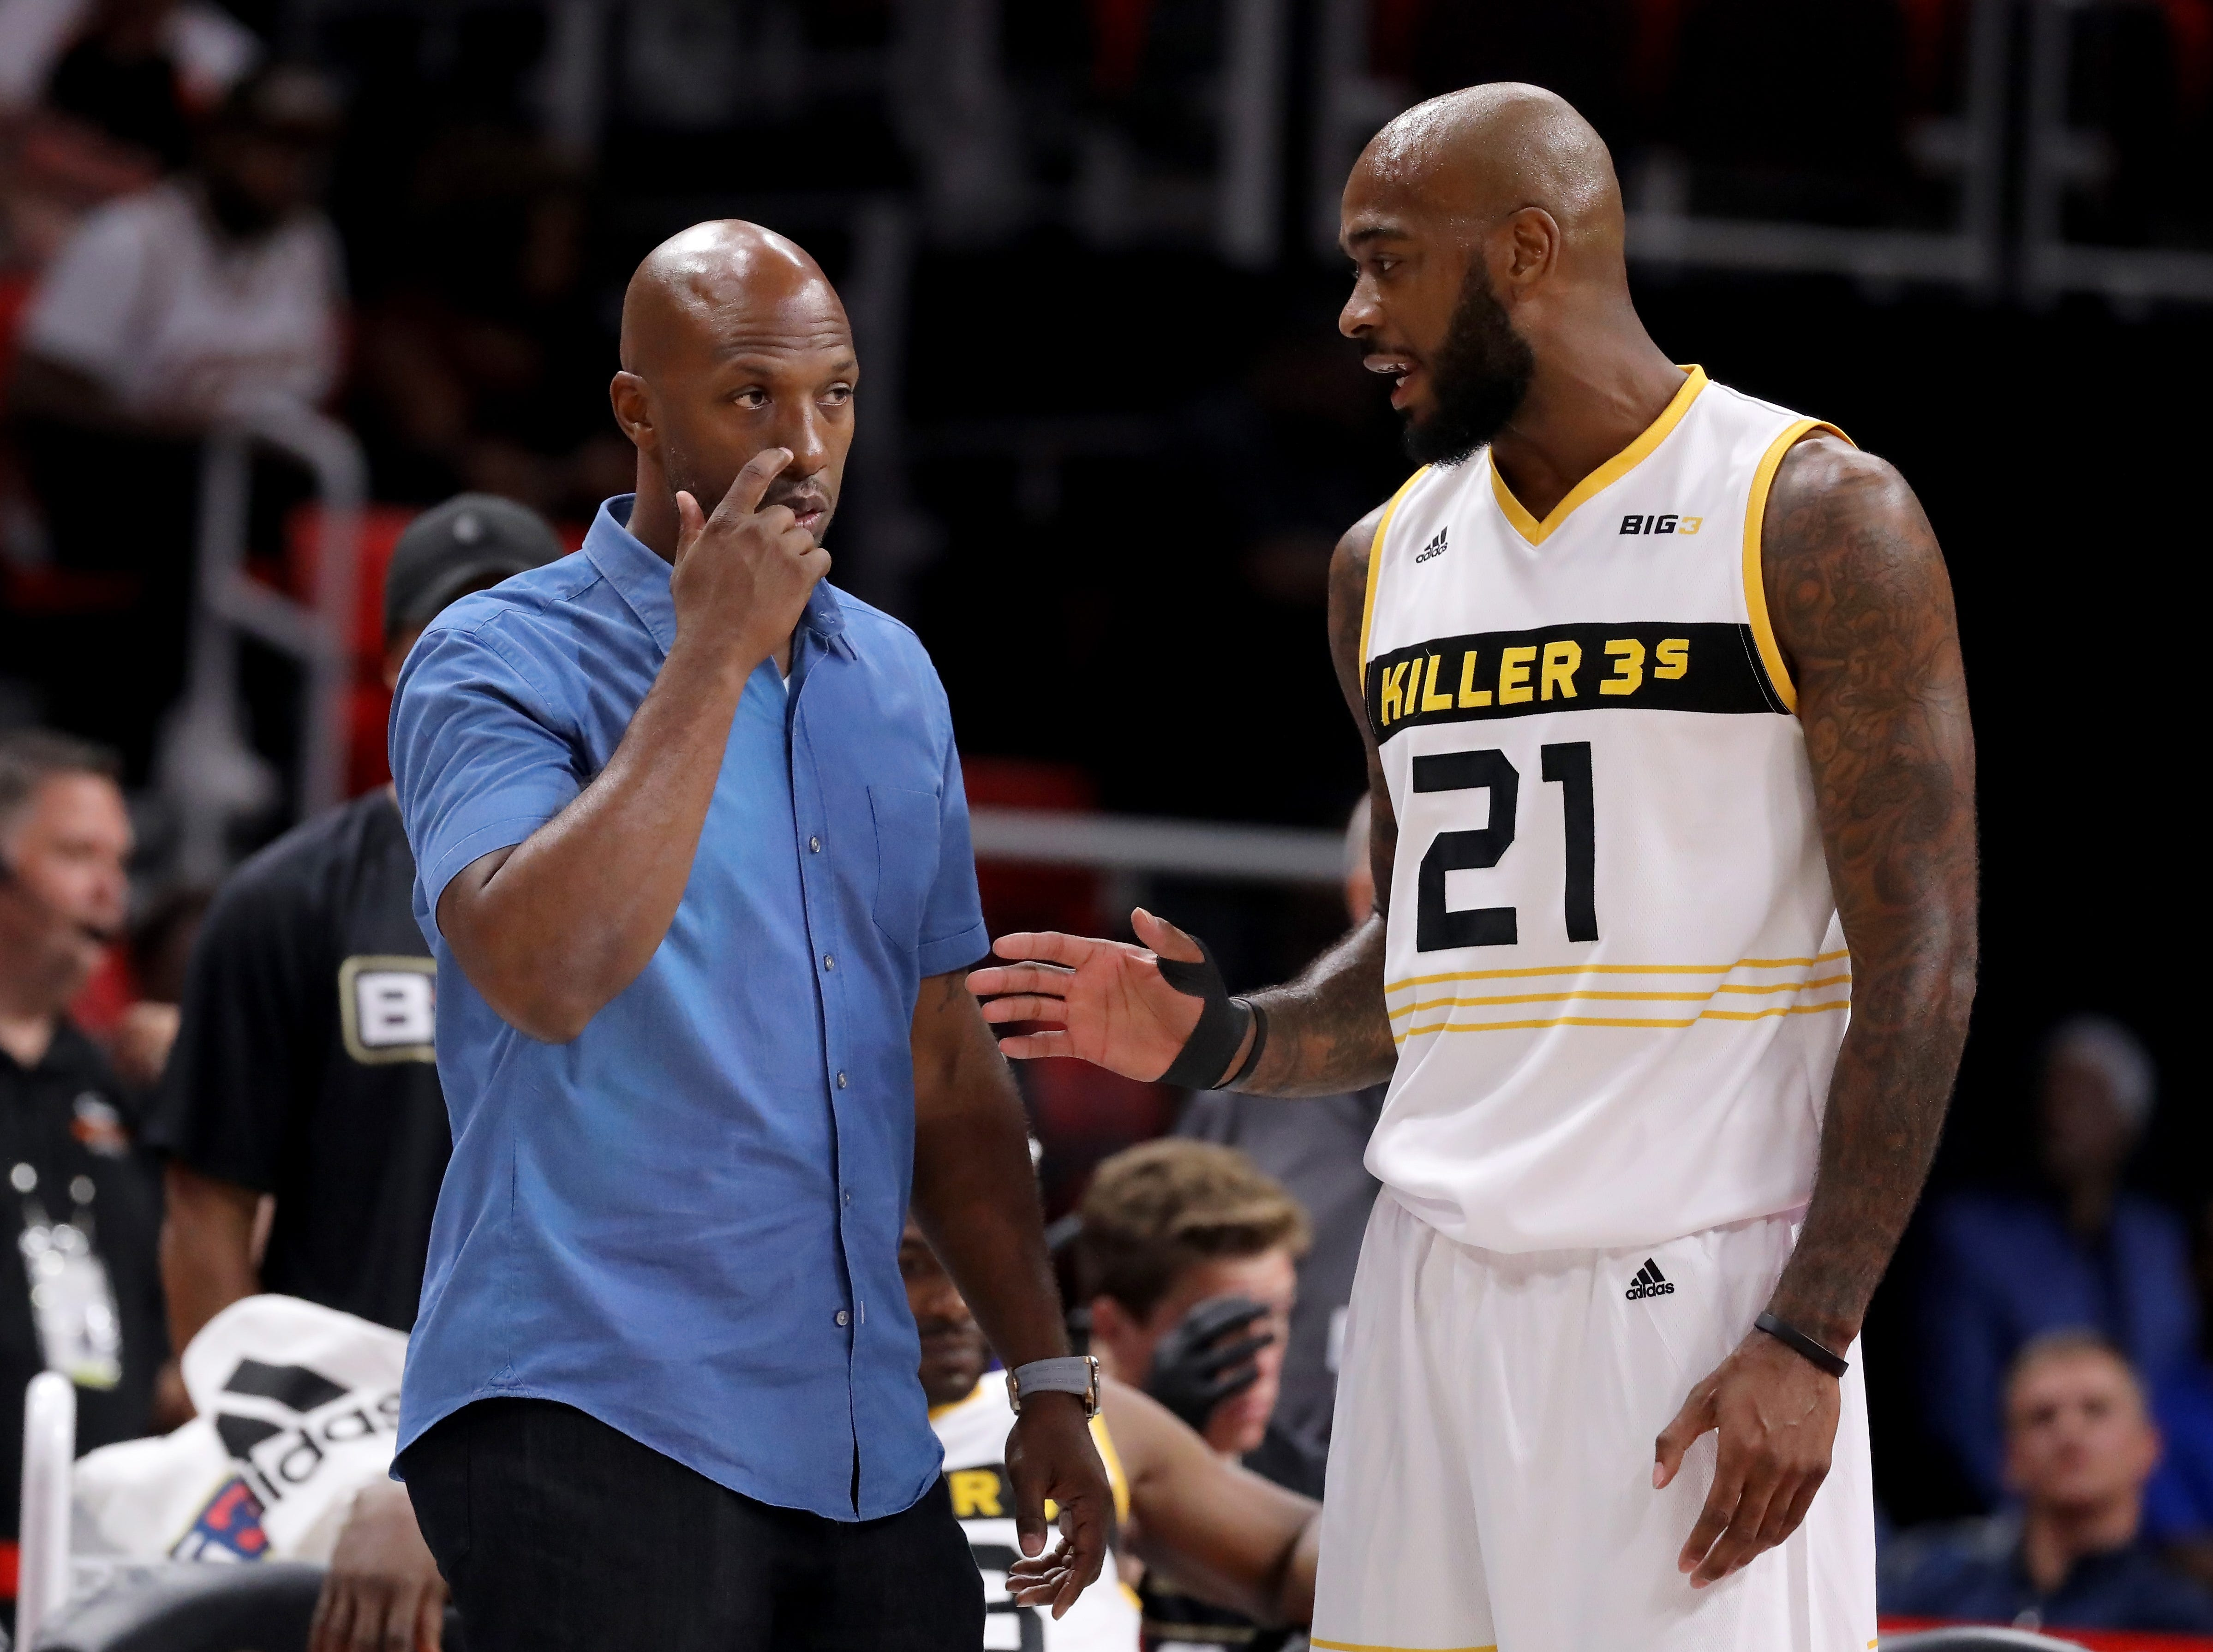 Chauncey Billups meets with Josh Powell of the Killer 3s during the game against Trilogy during BIG3 - Week Four at Little Caesars Arena on July 13, 2018 in Detroit.